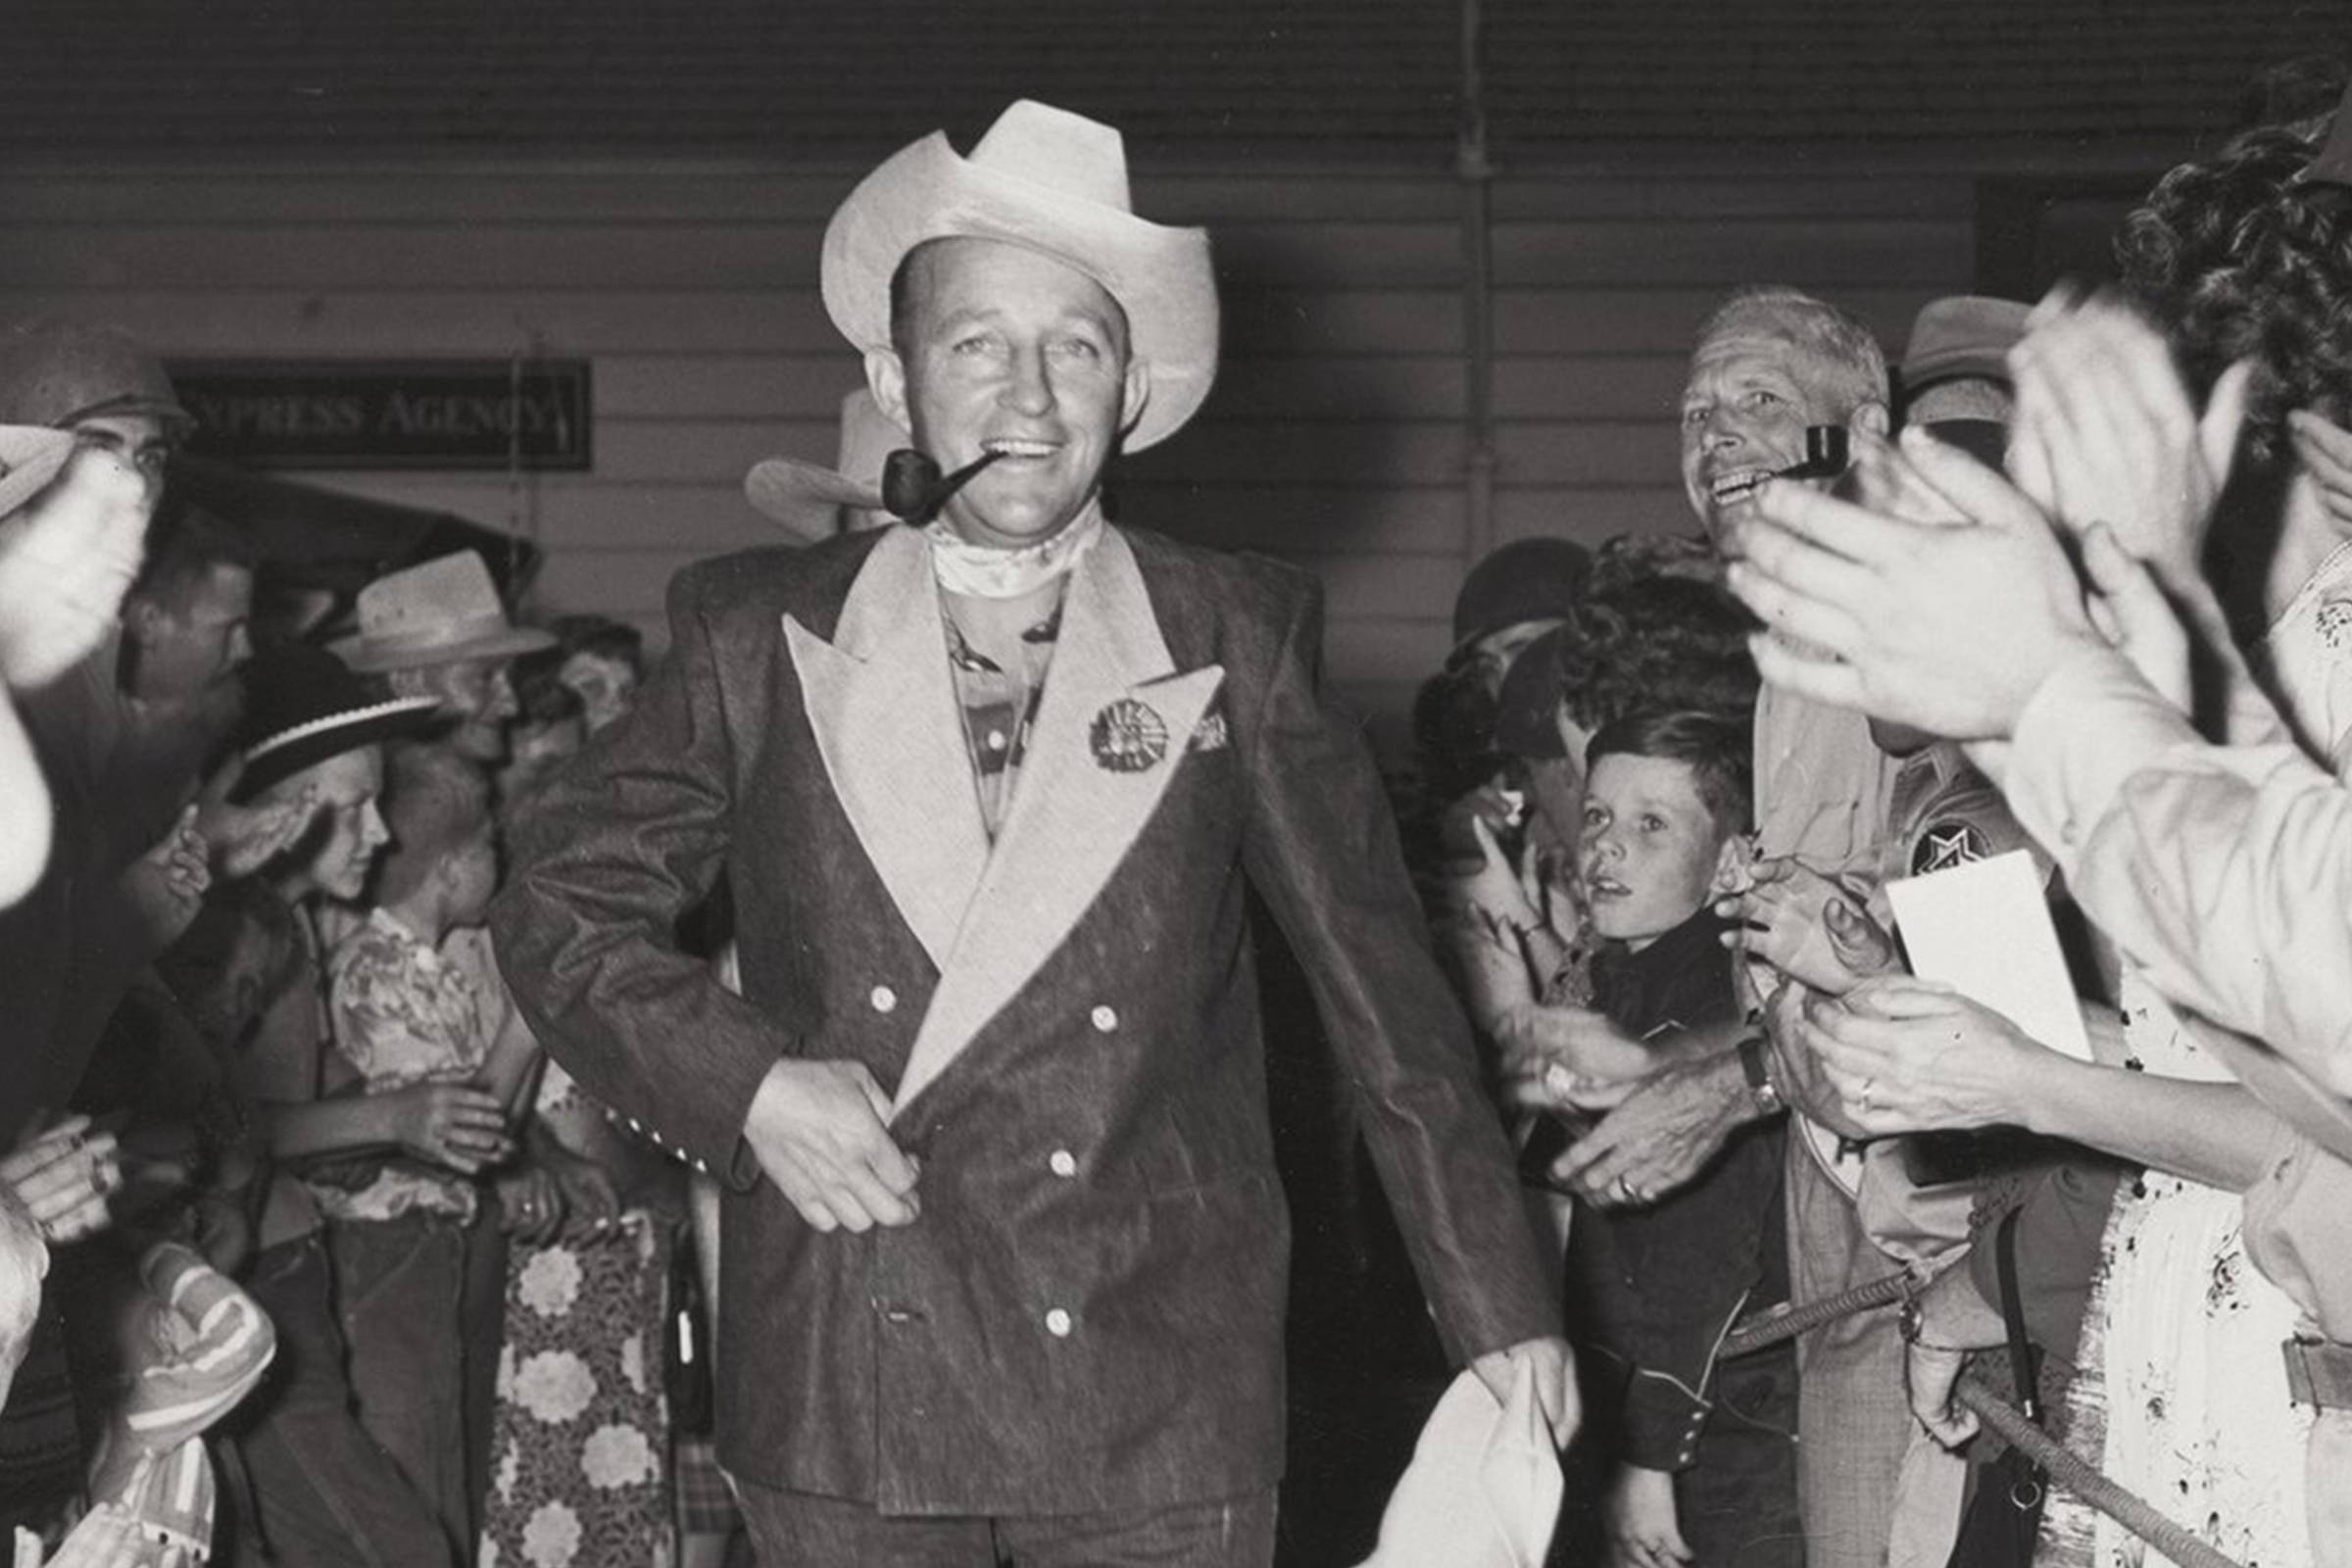 Bing Crosby in his custom double-breasted Levi's denim tuxedo